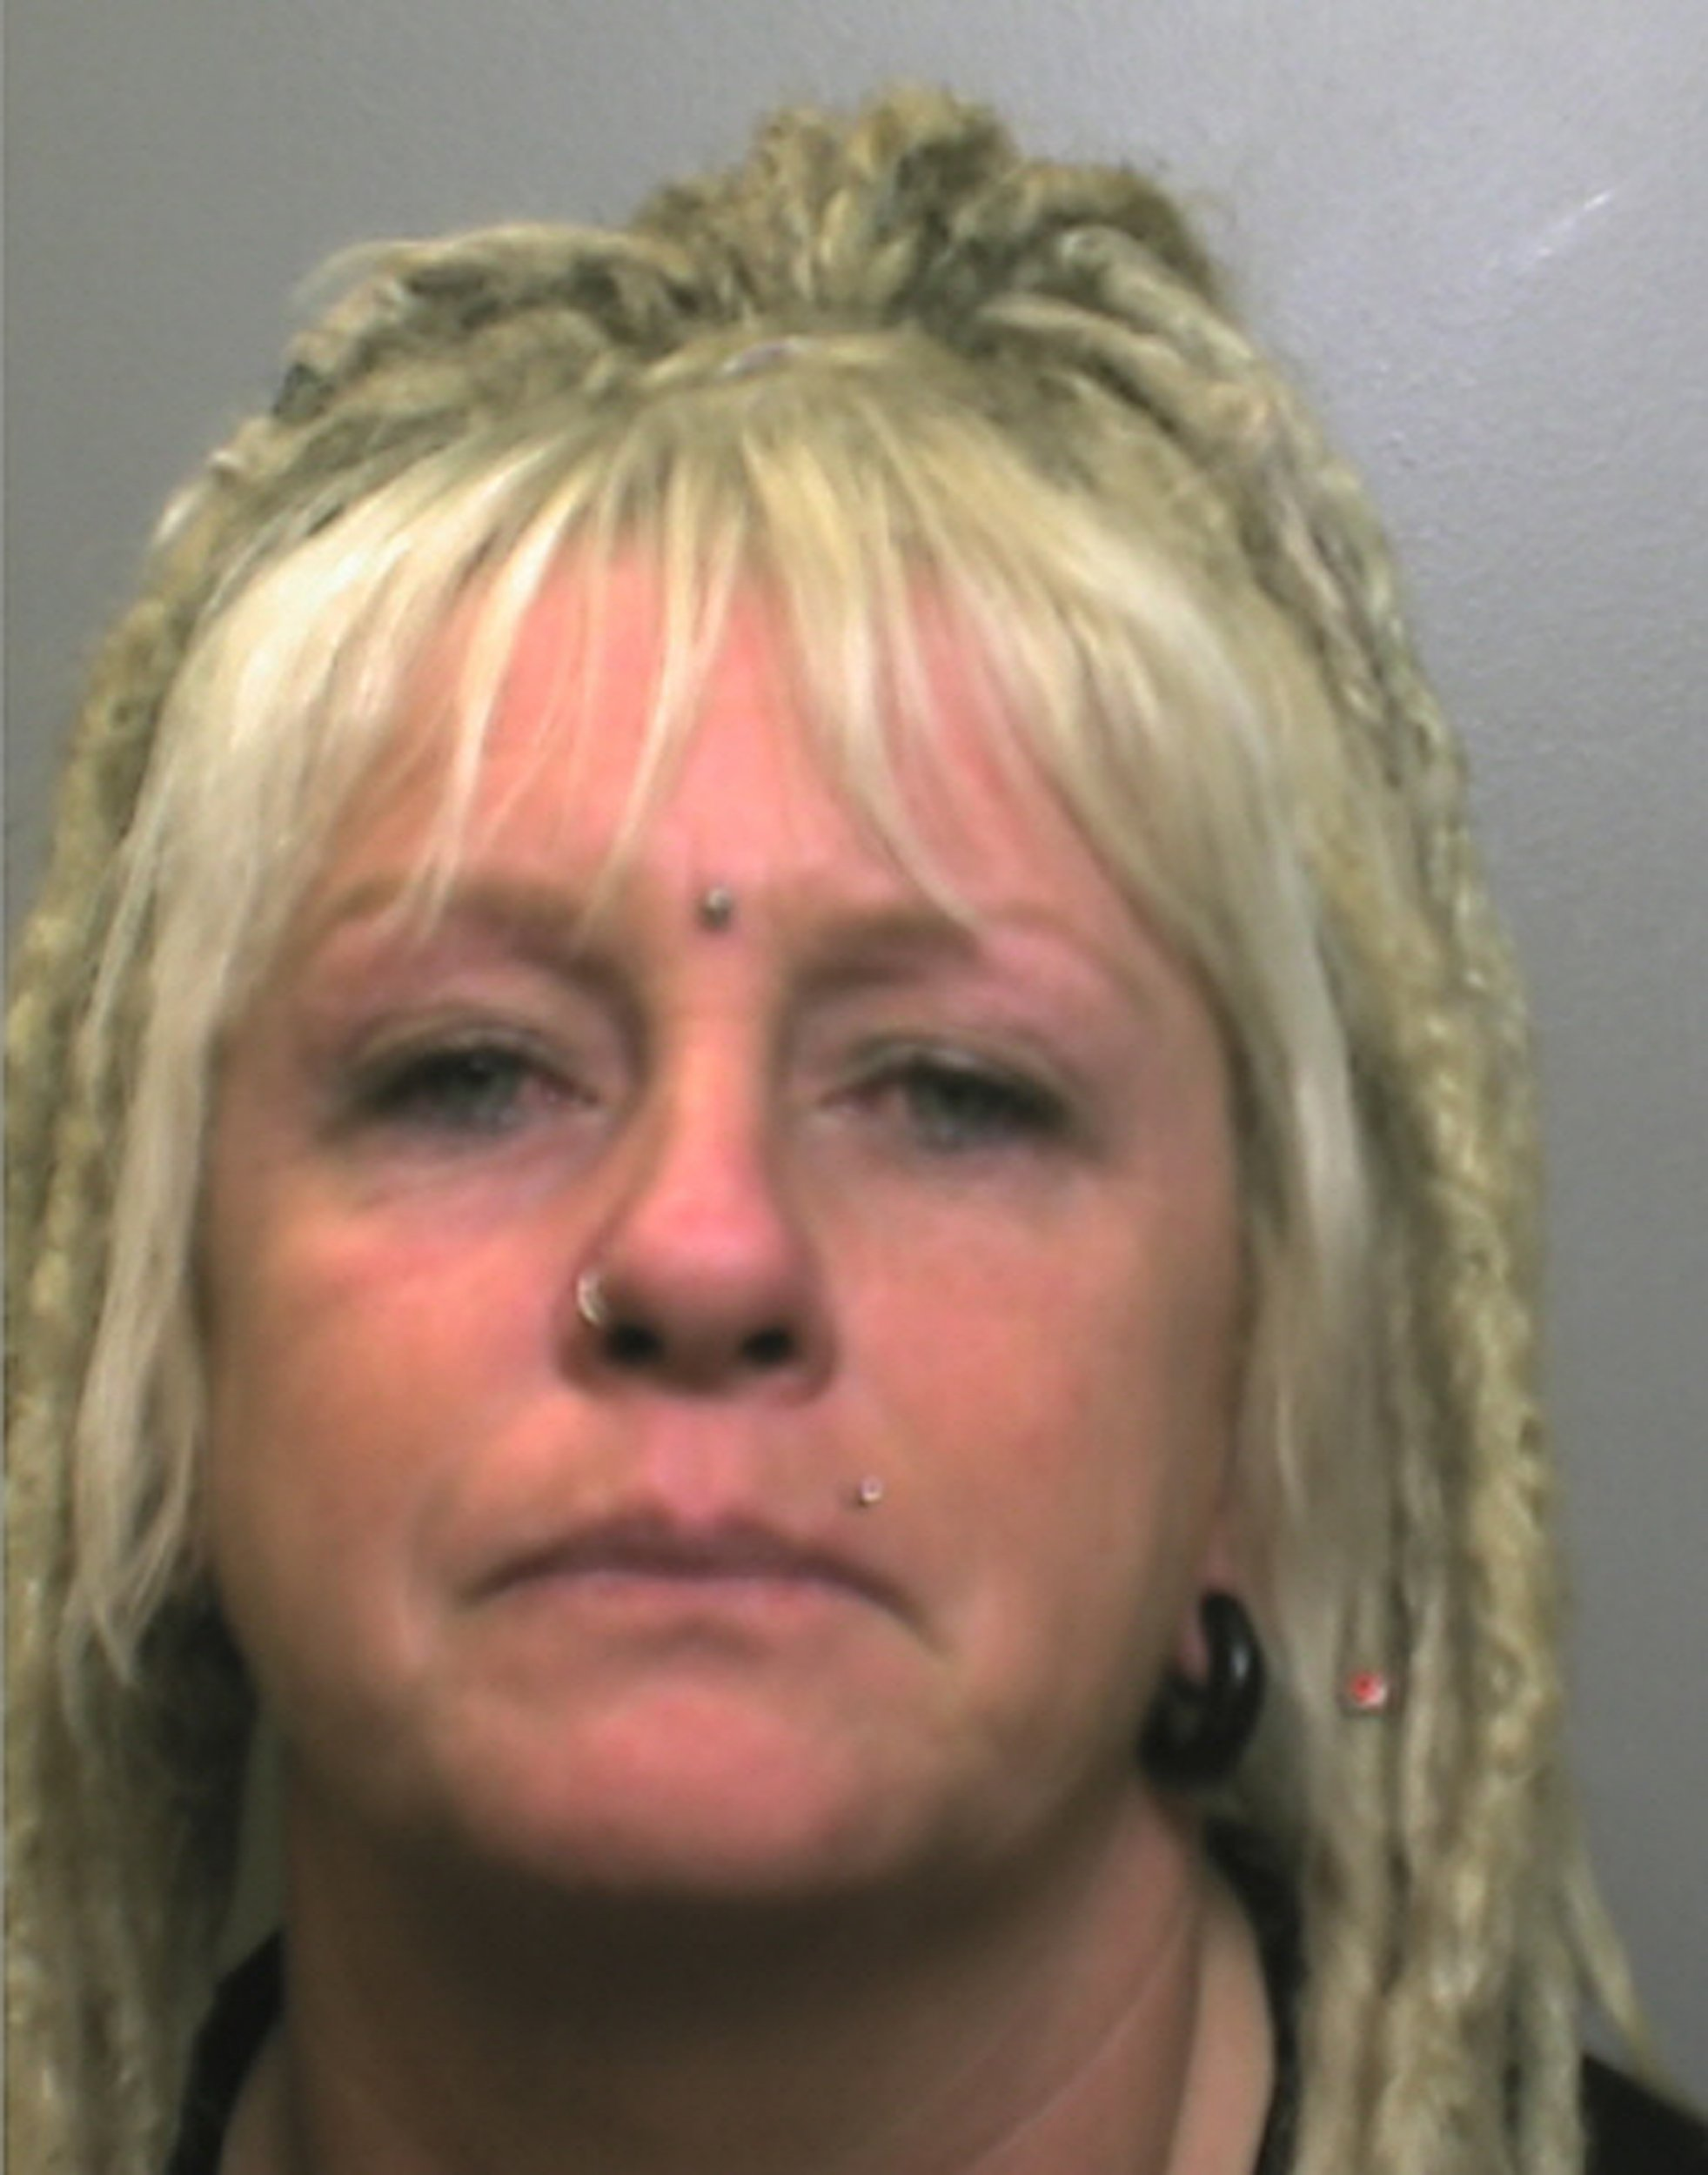 Pic from WMP/Caters News - (Pictured: Pamela Jackson.) - A fraudster who conned her new man out of 38,000k with lie-upon-lie about her bogus cancer treatment has been jailed. Pamela Jackson, 49, was still in a long-term relationship when she started having an affair with another man. She told her new partner a pack of lies, including that she had spinal cancer and needed cash for treatment, to defraud him of the money over a period of four years. Jackson also separately told the victim she had been robbed: her brother died owing her 5,000gbp ; she was being threatened by a loan shark; her niece had been in a series car accident, had her arm amputated and needed brain surgery; her nieces son had been killed. However, her scam unravelled when the defendants fiance met the victim when Jackson was in New York with a niece who claimed to be in hospital.SEE CATERS COPY.